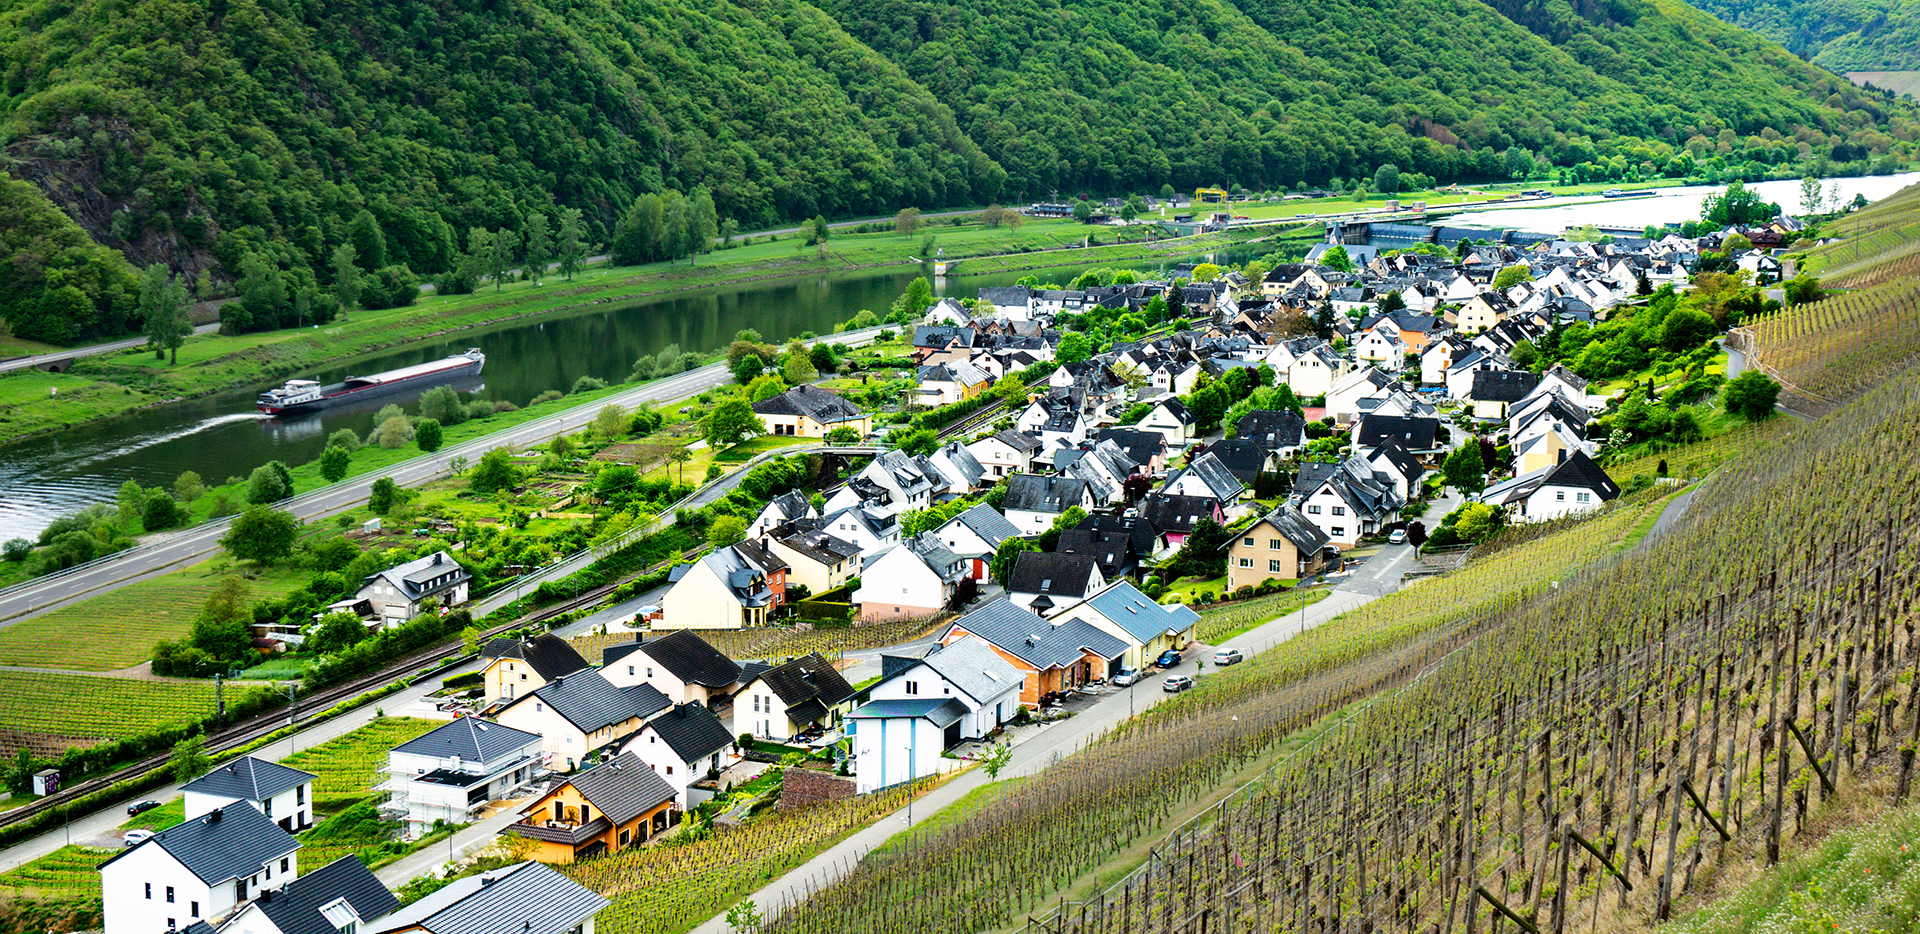 Müden (Mosel) And Vineyards